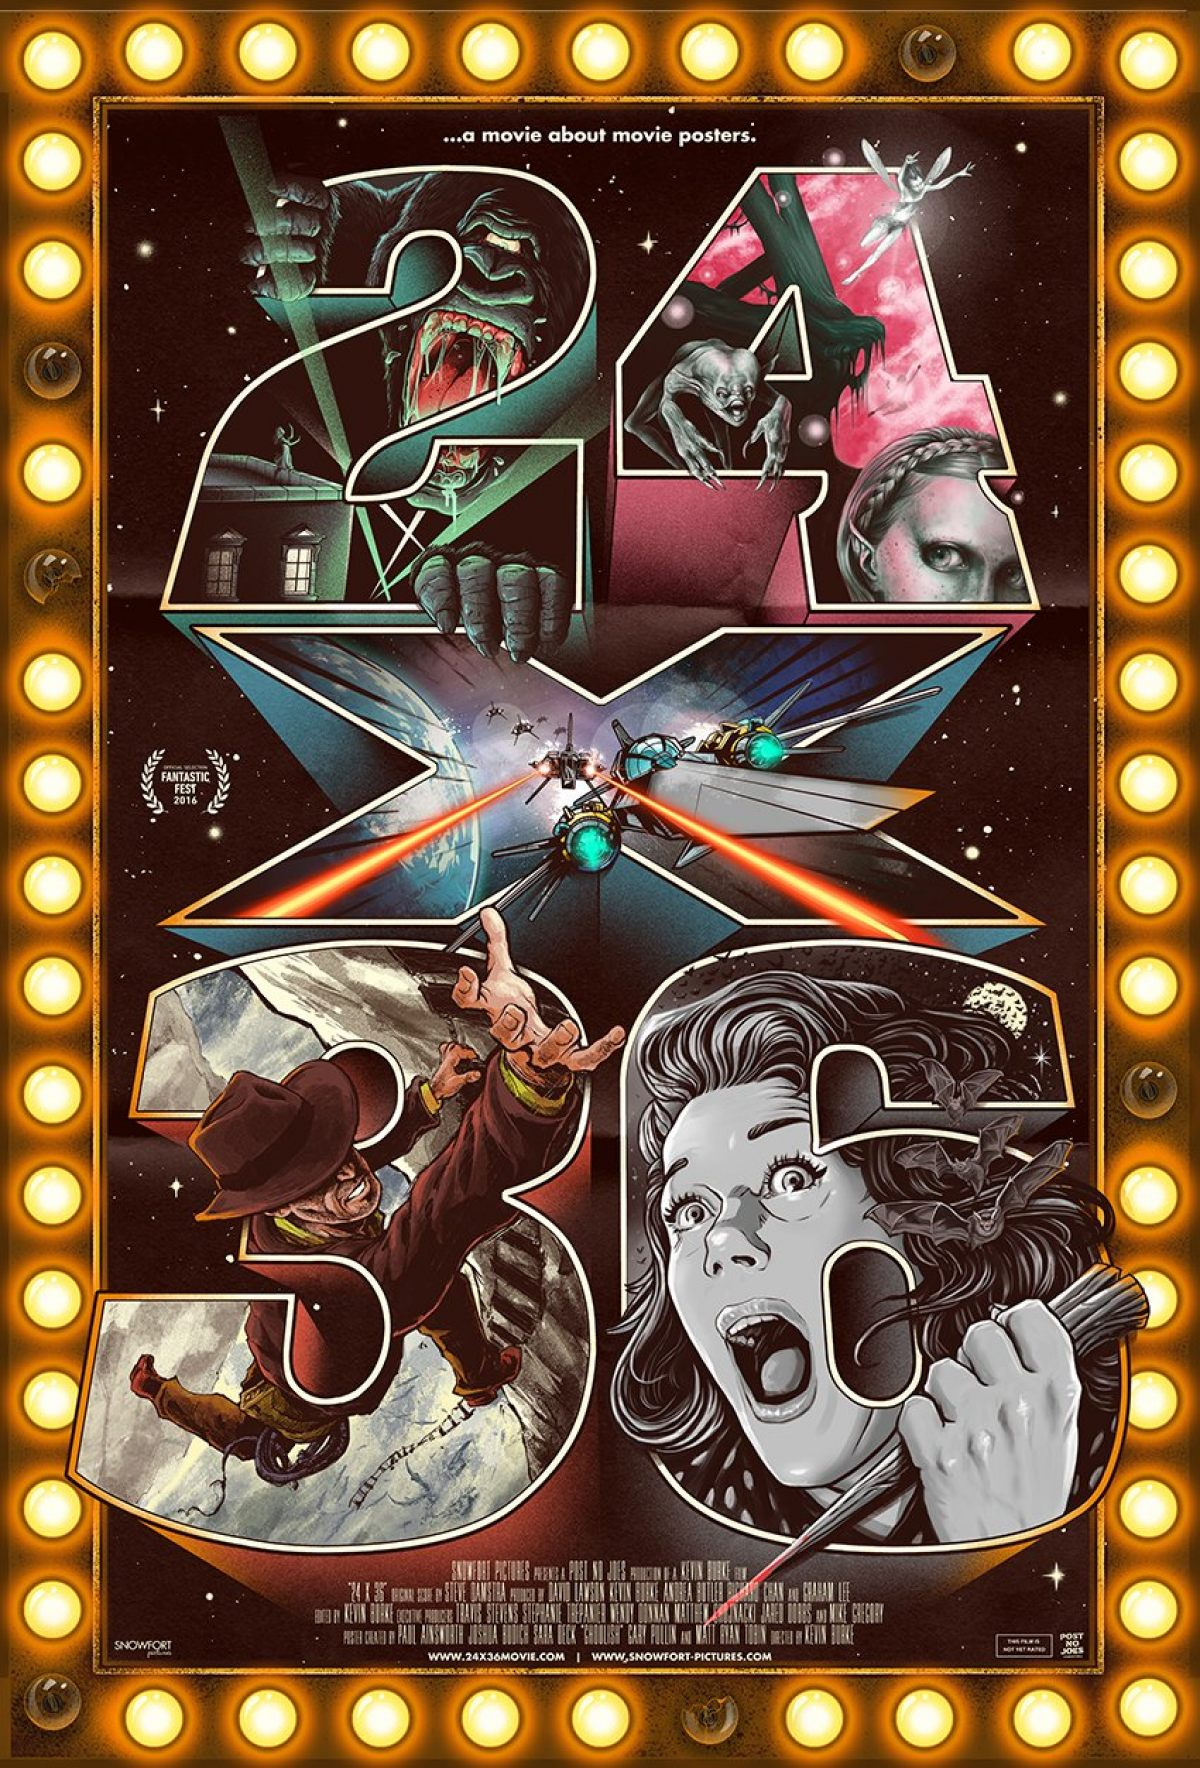 24x36 poster design - Fantastic Fest Always Has Great Movie Oriented Documentaries Playing And This One Looks Like No Exception We Ll See Next Week